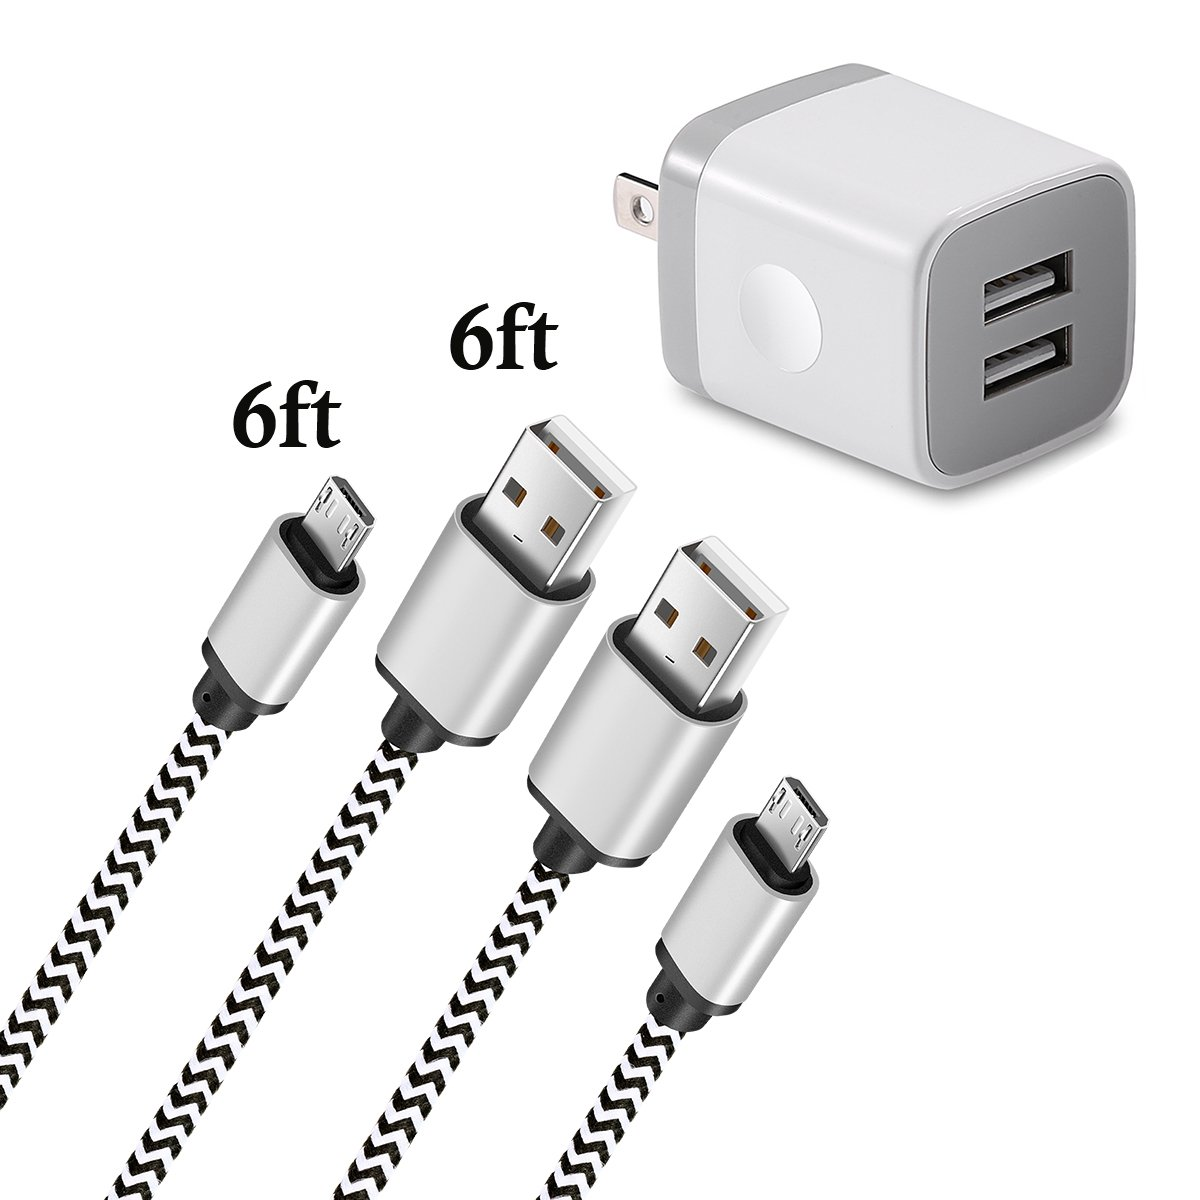 LEEKOTECH Micro USB Charger, Android Charger Cable 6FT 2-Pack with Wall Charger Plug 2.1A/5V Braided Cord for Samsung Galaxy S6/S7 Edge, J3 J5 J7, Note 5/4, Moto G5/G4 Plus, More Cell Phone